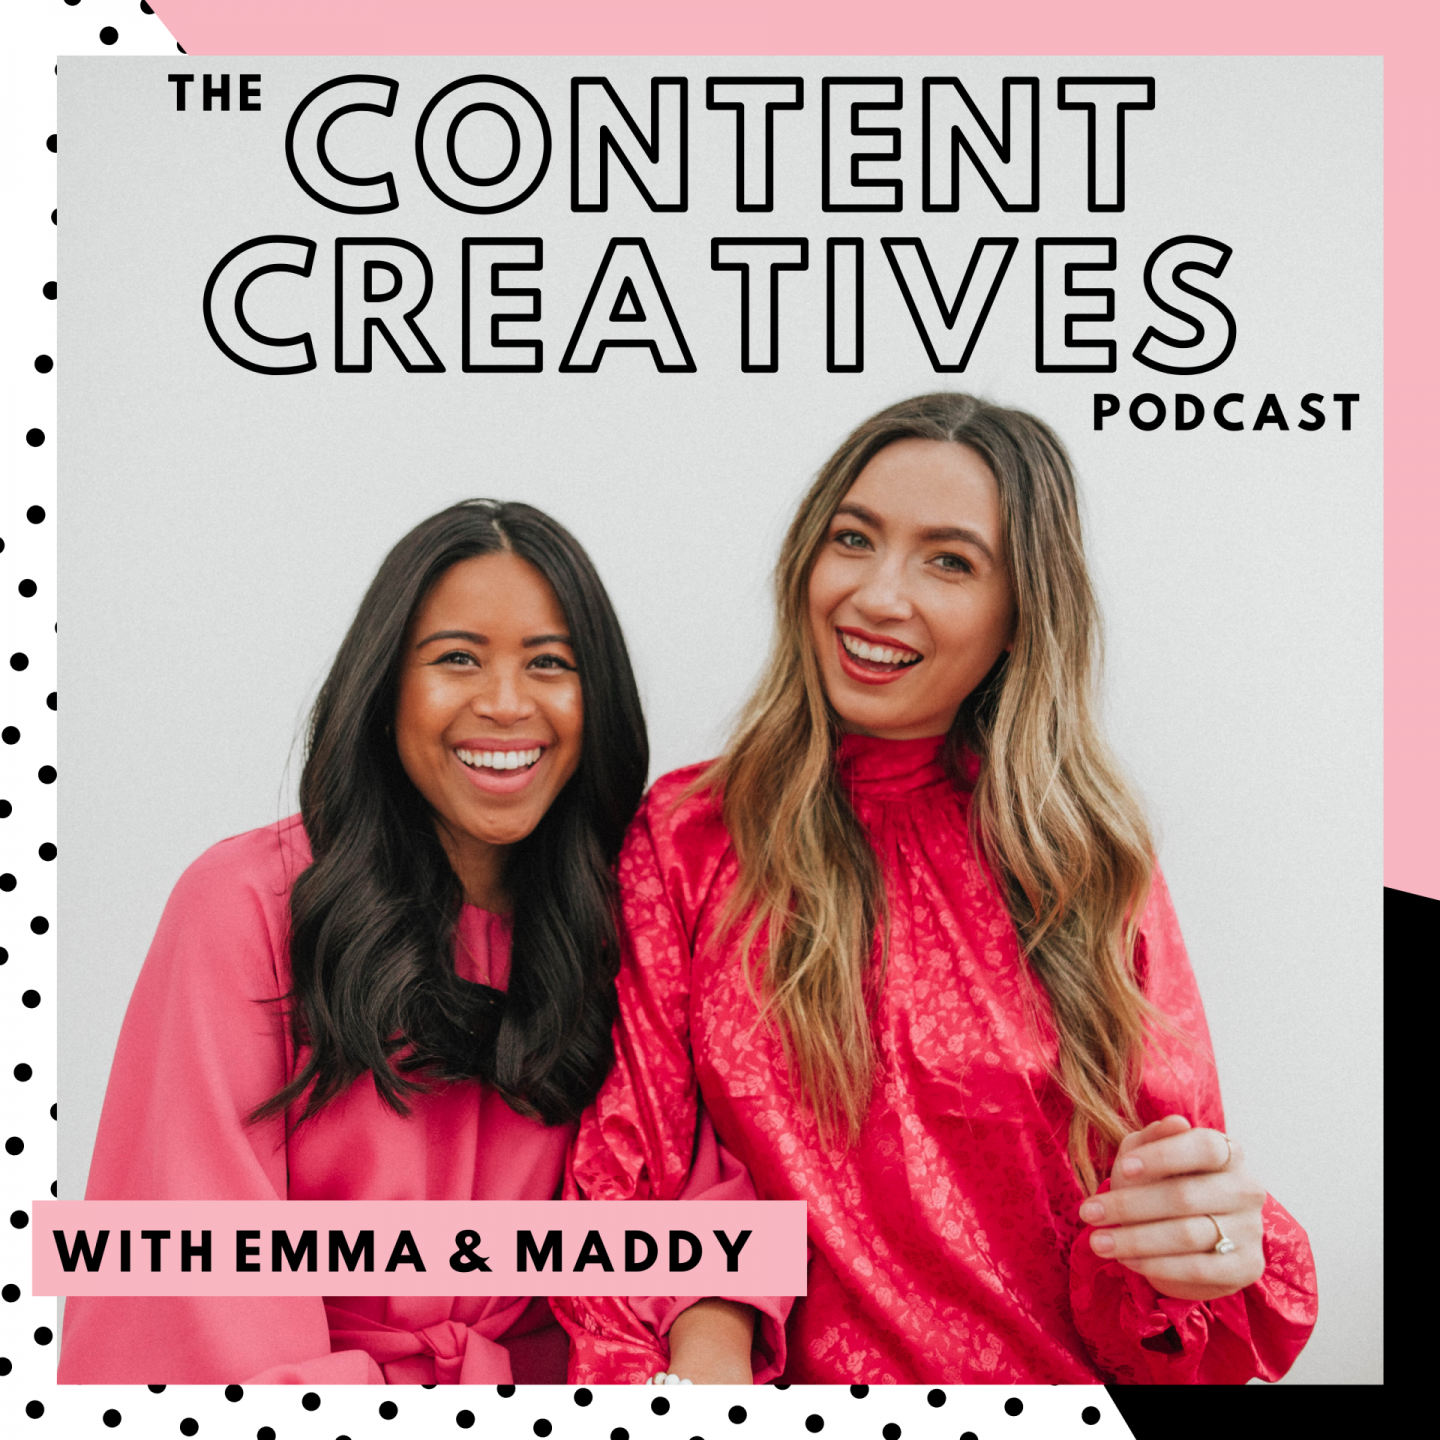 emma and maddy - seattle content creators